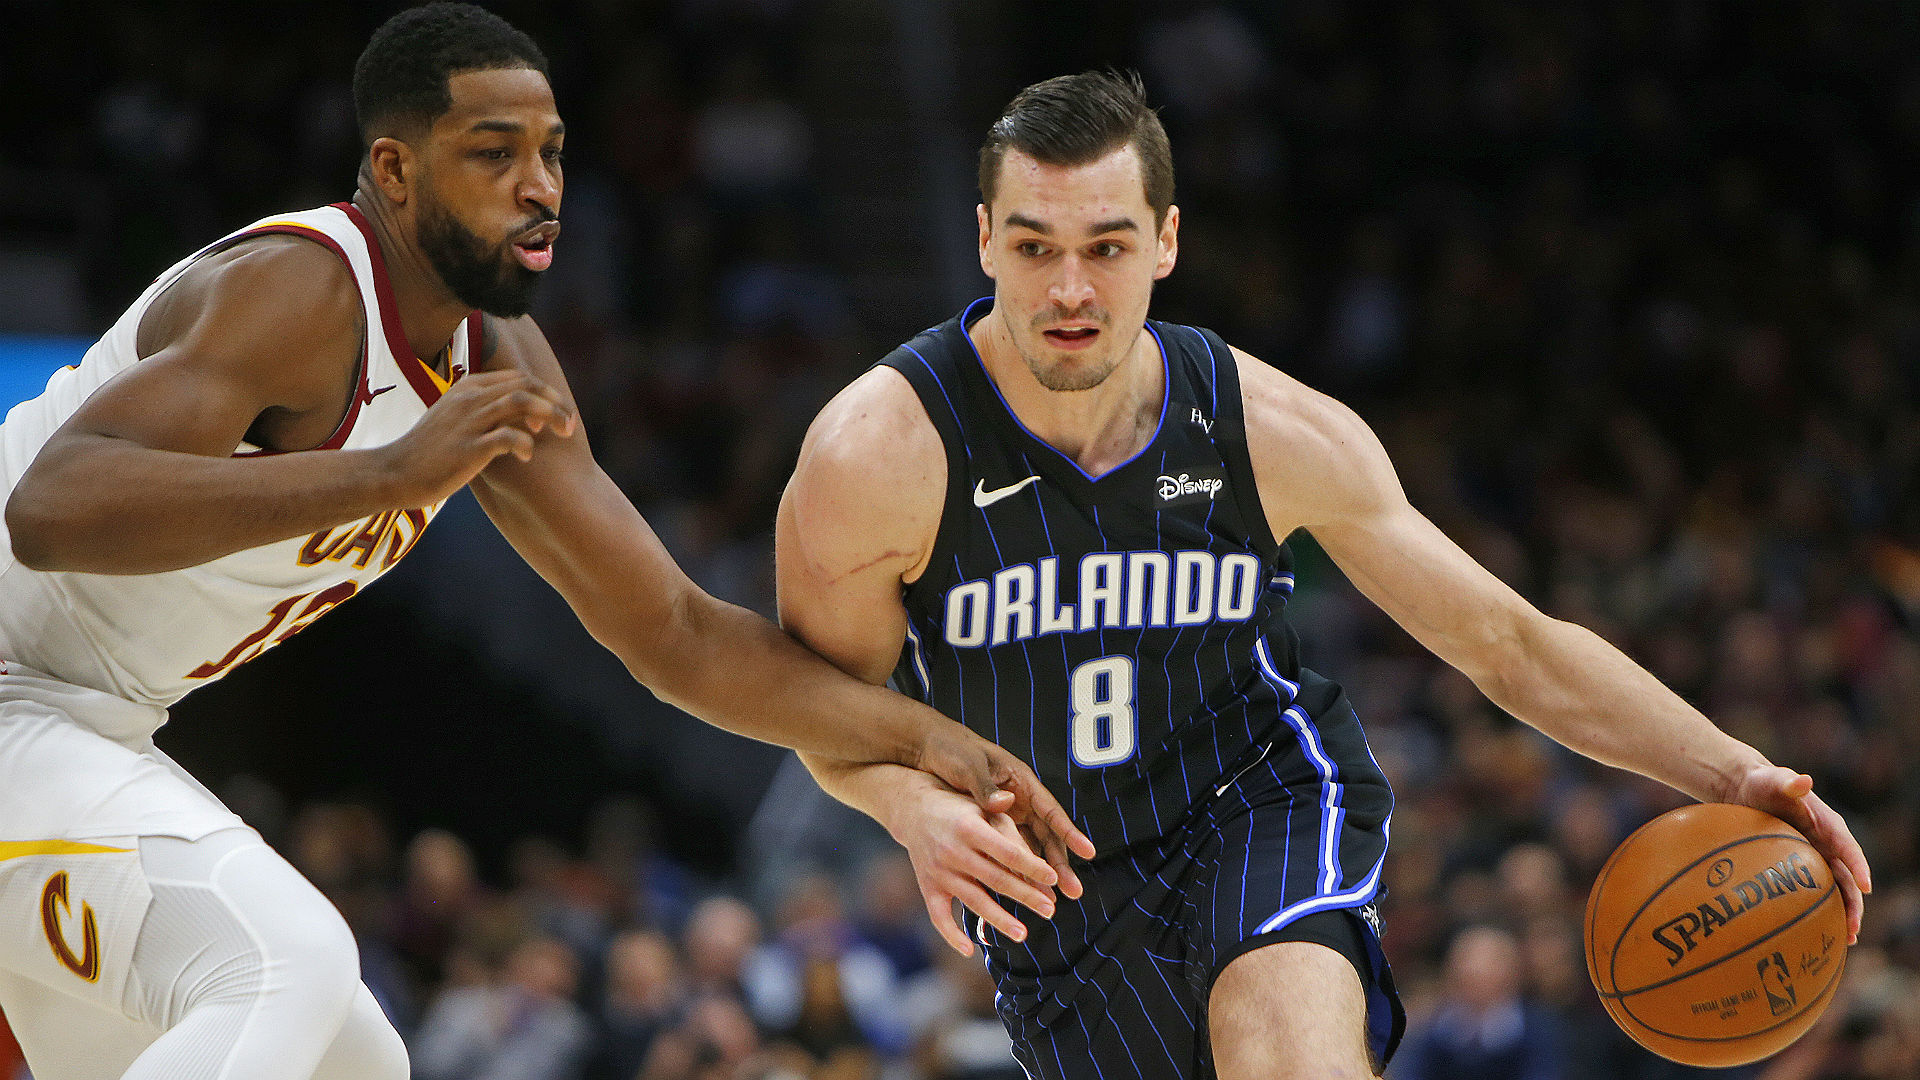 Basketball player Mario Hezonja joins the Knicks